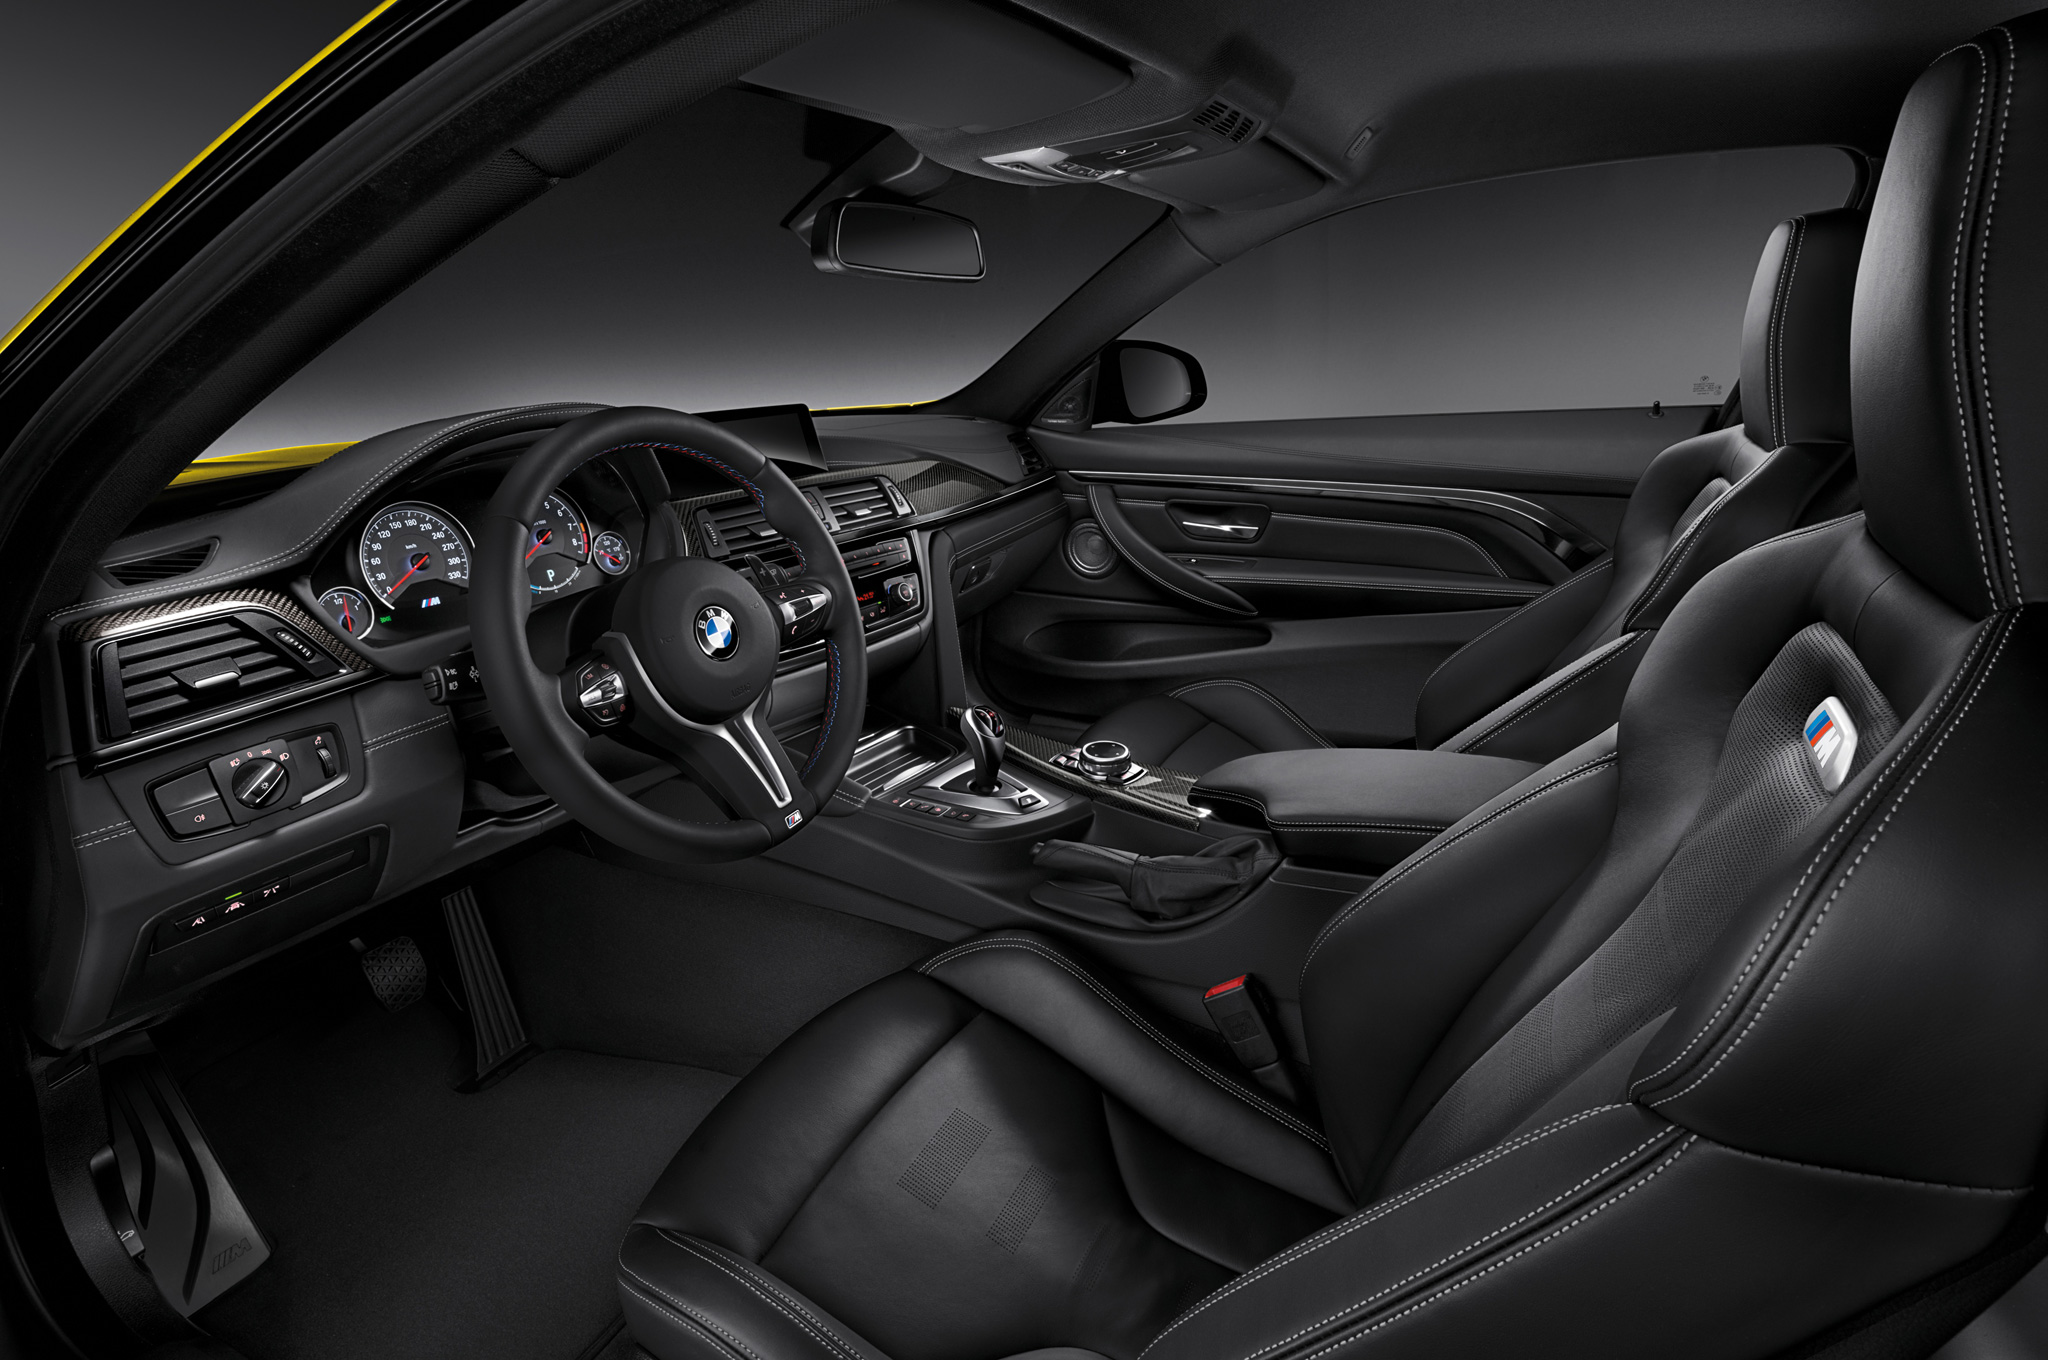 2015 Bmw M4 Interior Front Seats (Photo 33 of 41)